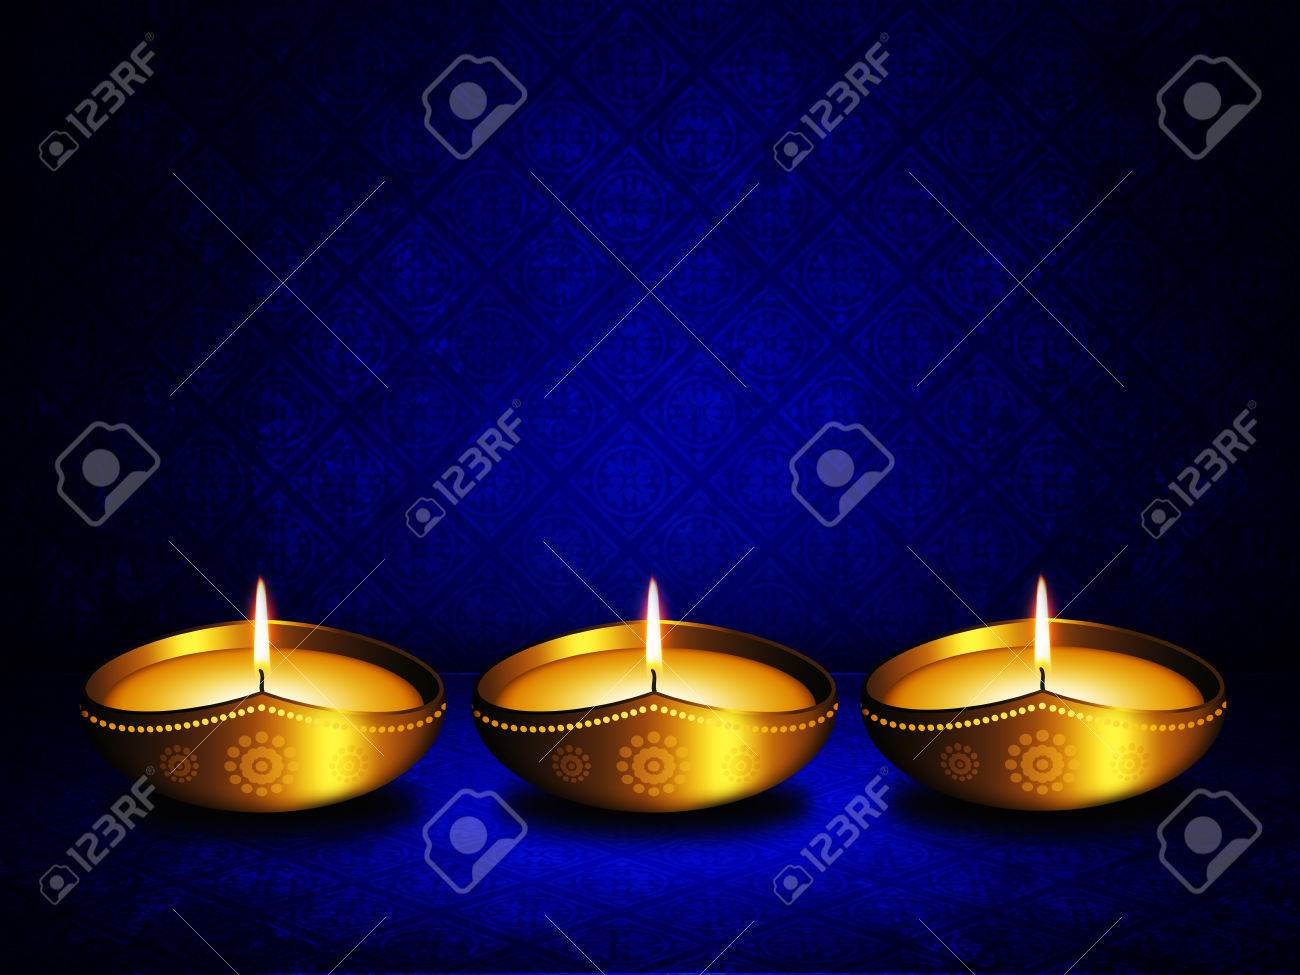 Oil Lamp With Place For Diwali Greetings Over Dark Blue Stock Photo